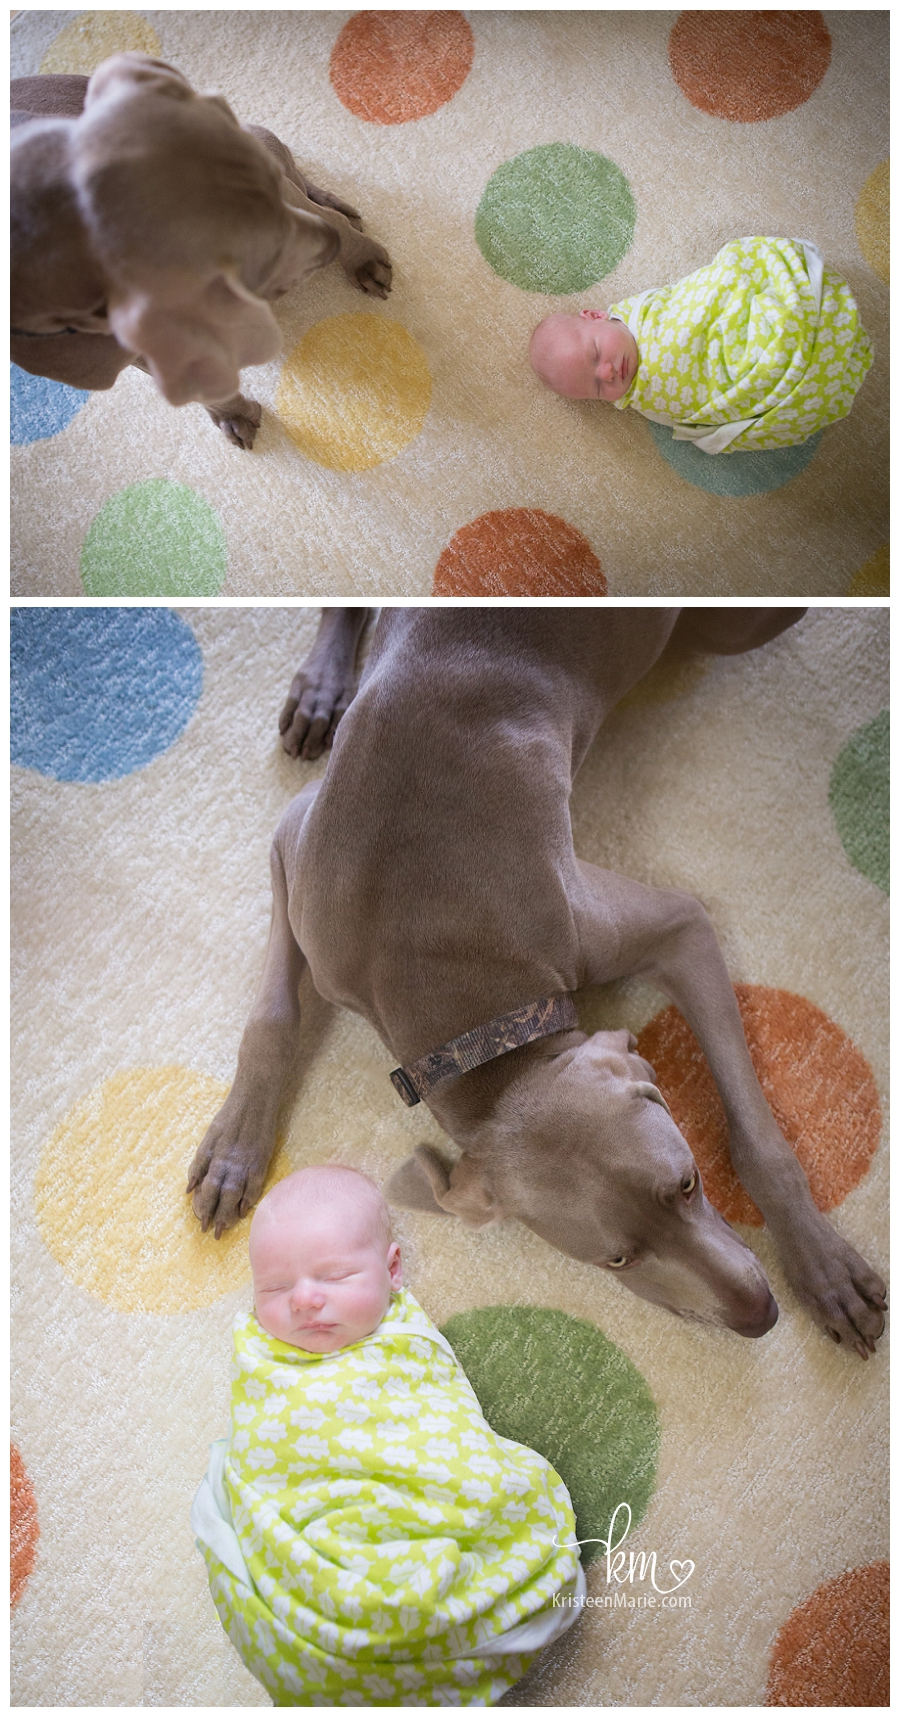 newborn with family dog